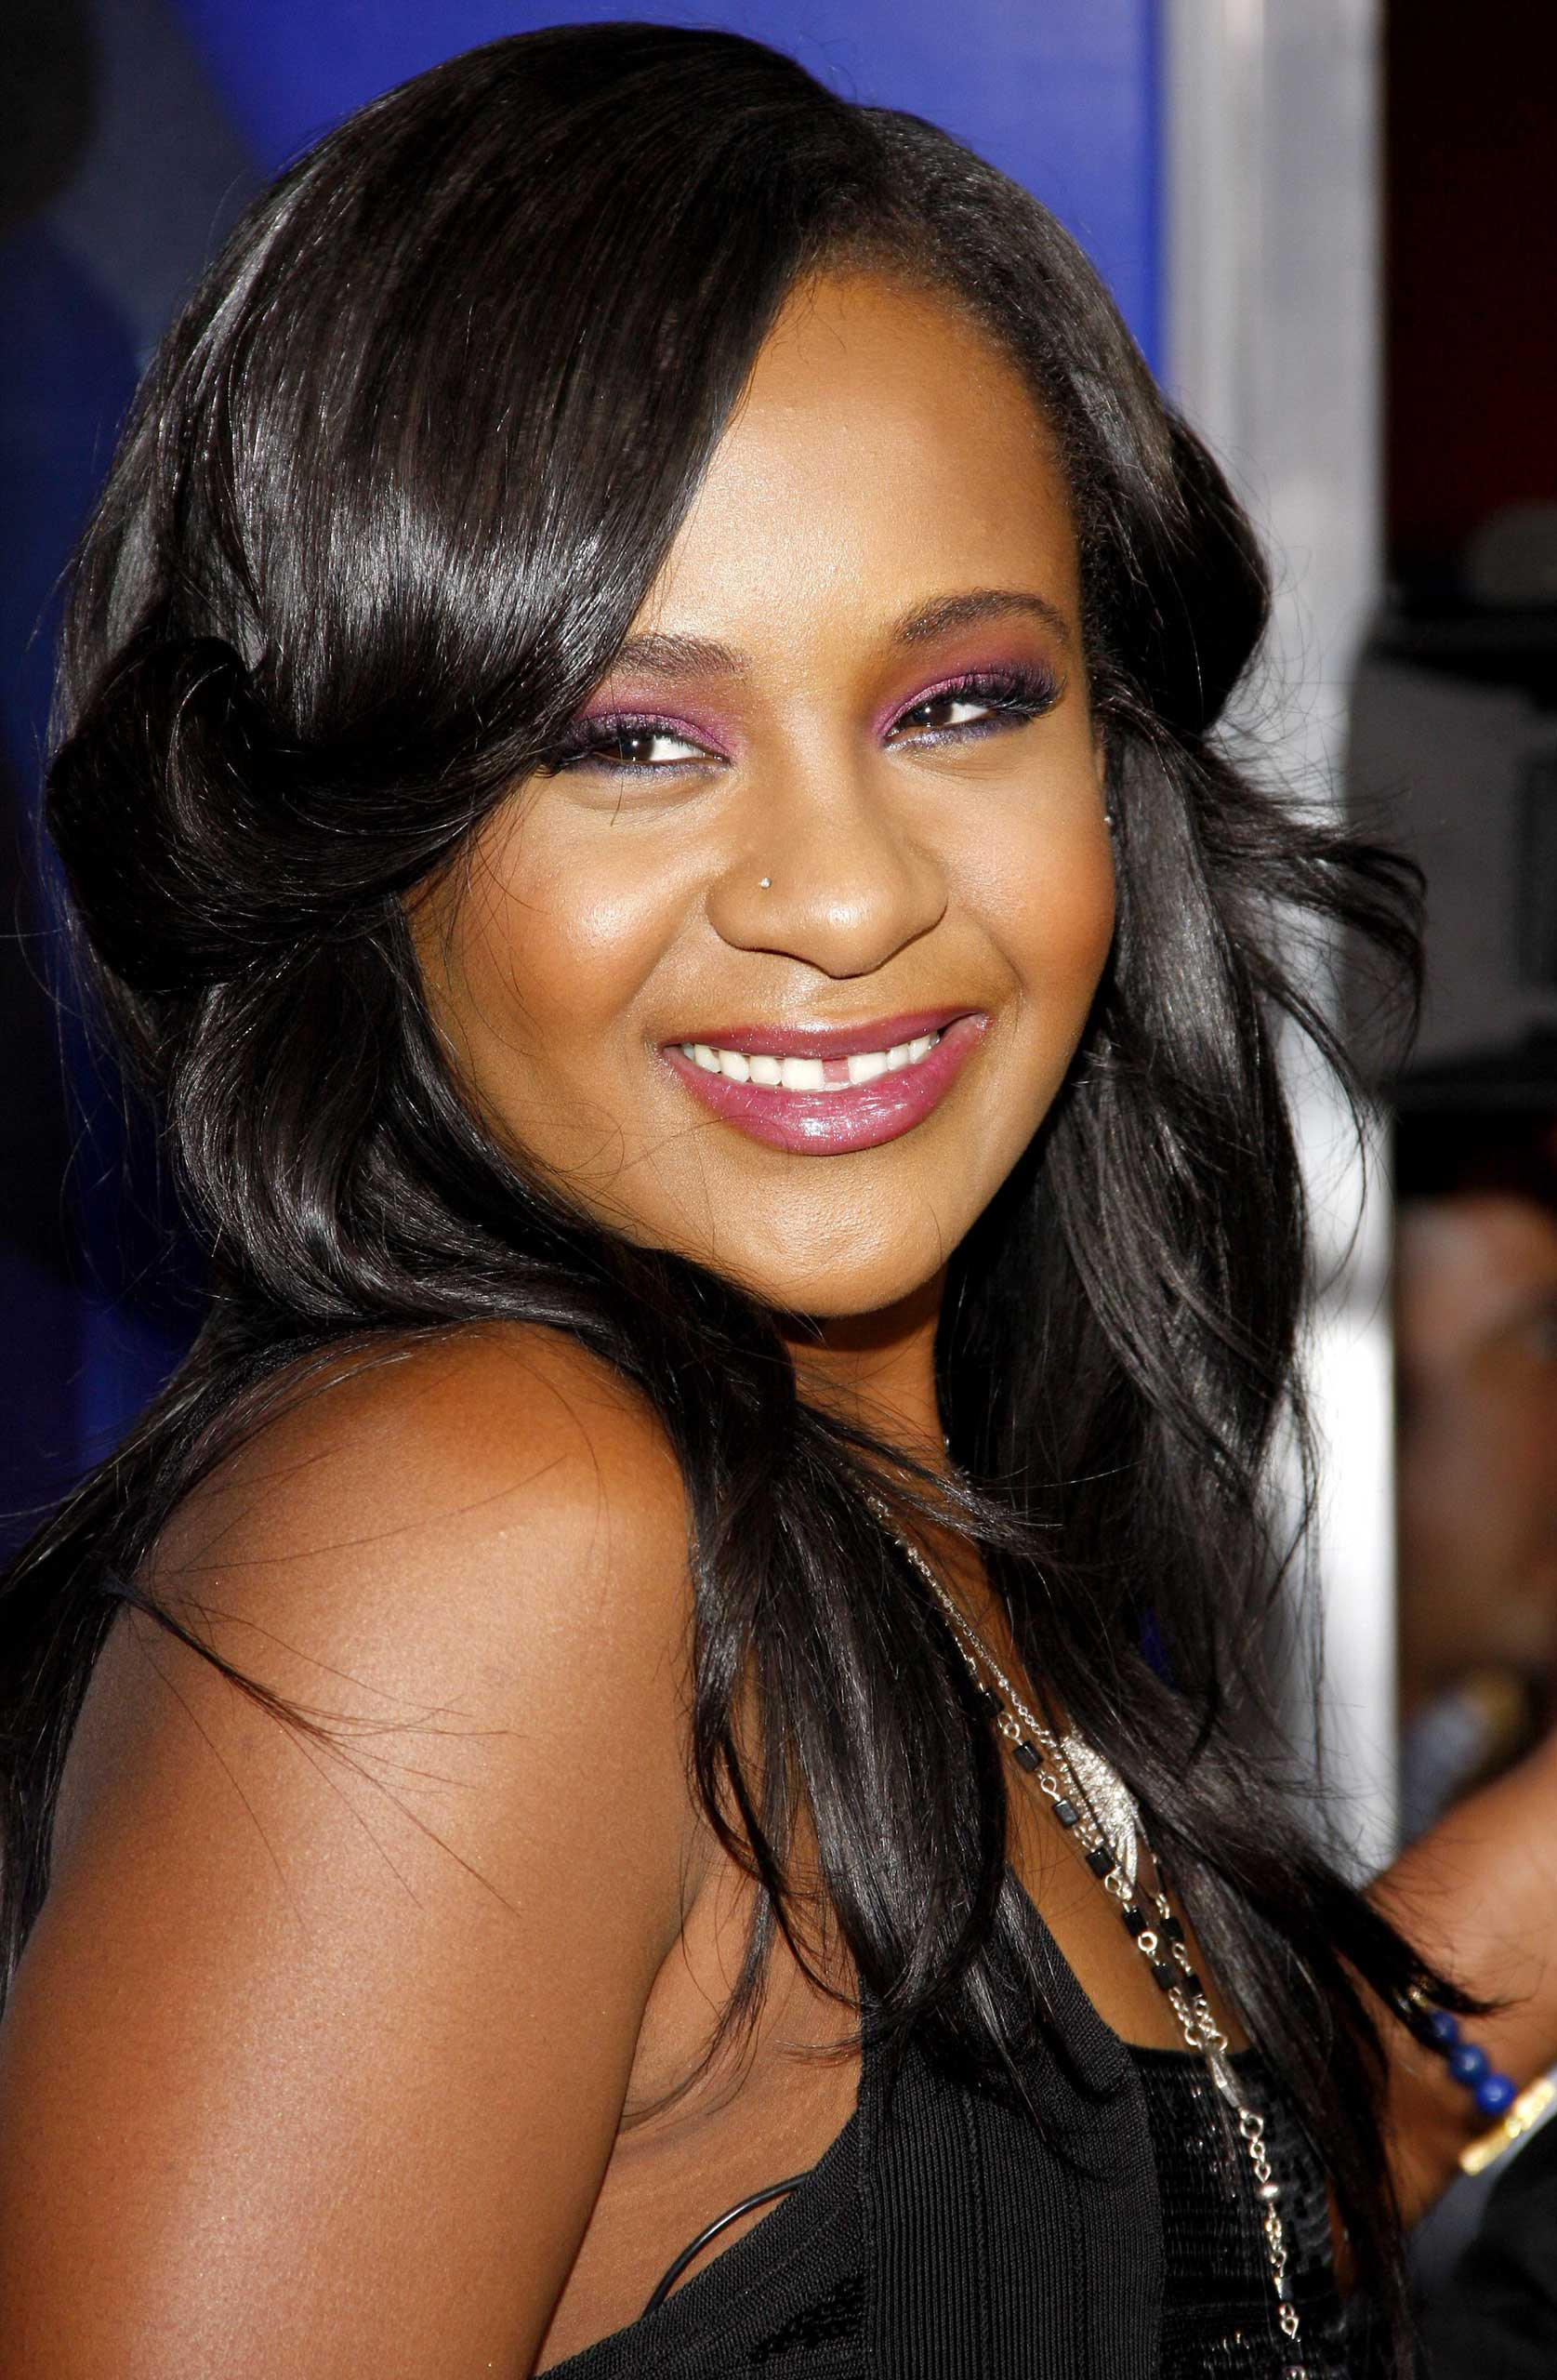 Bobbi Kristina Brown at the Los Angeles premiere of 'Sparkle' held at the Grauman's Chinese Theater in Hollywood, Calif. on Aug. 16, 2012.